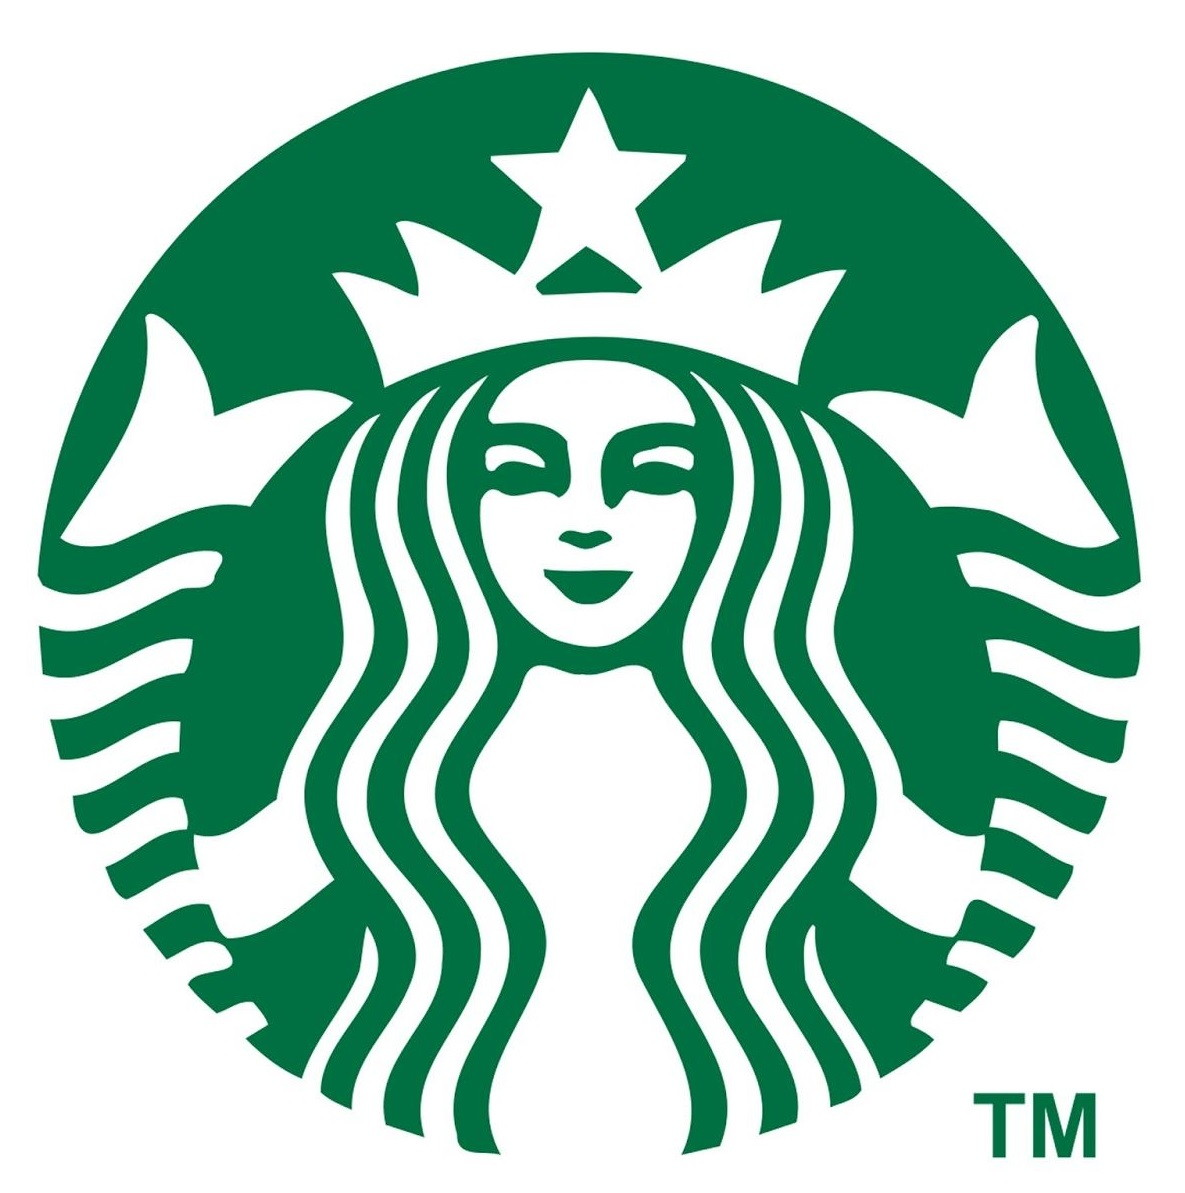 photograph relating to Starbucks Printable Coupons identified as Starbucks Discount codes - The Krazy Coupon Female